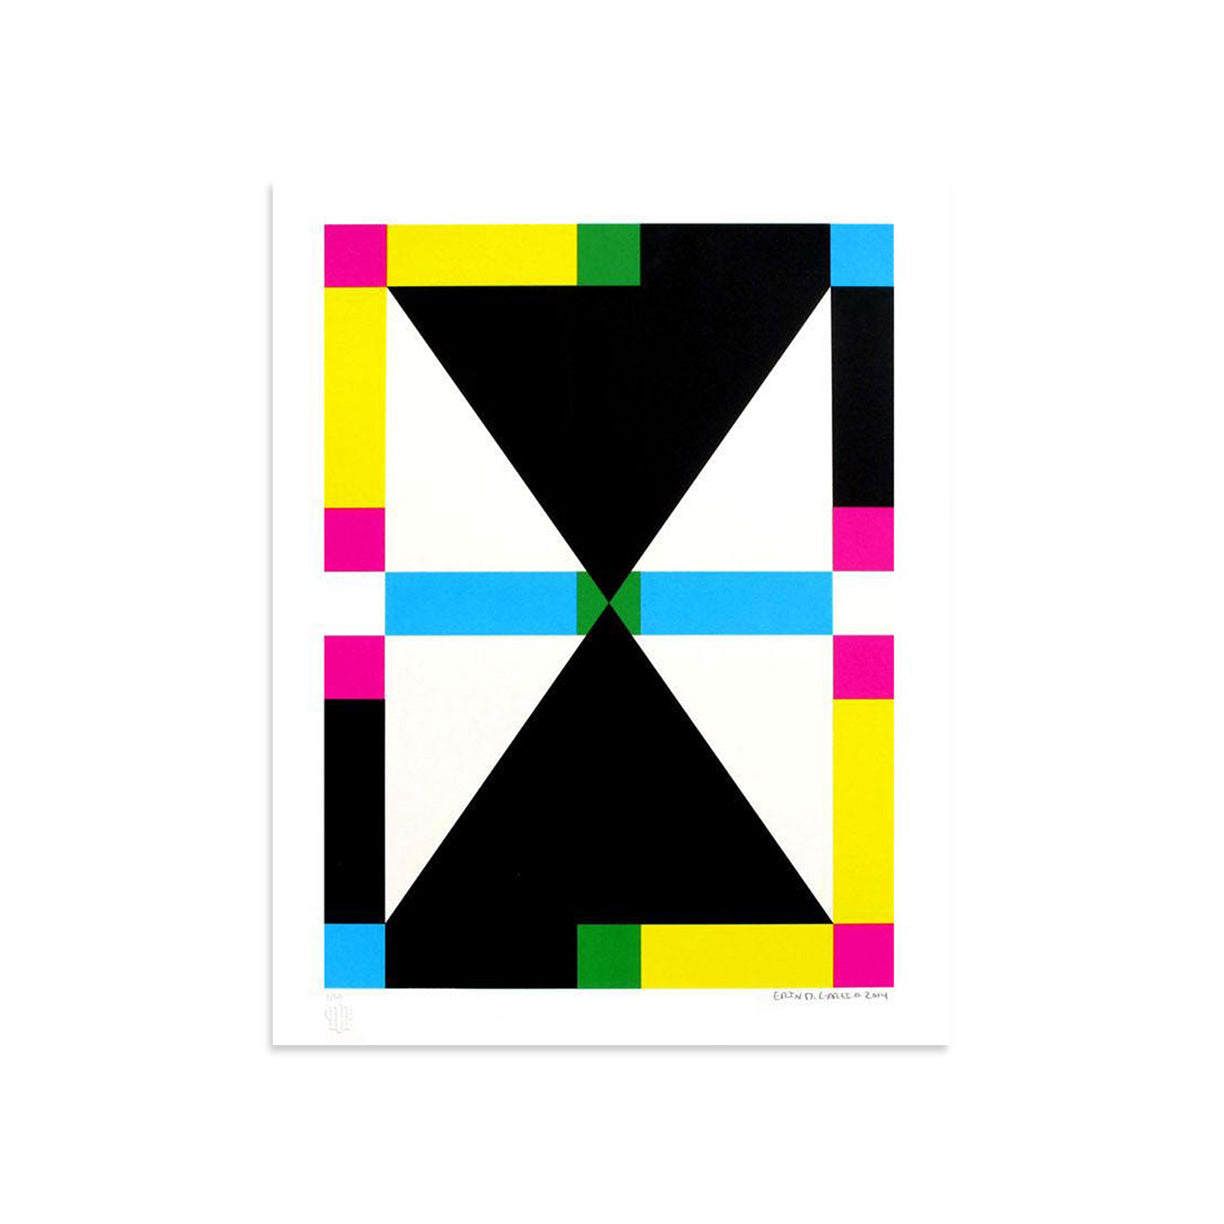 4 Shapes in 6 Colors - Color Rotation 2 by Erin D. Garcia | Print | Poster Child Prints